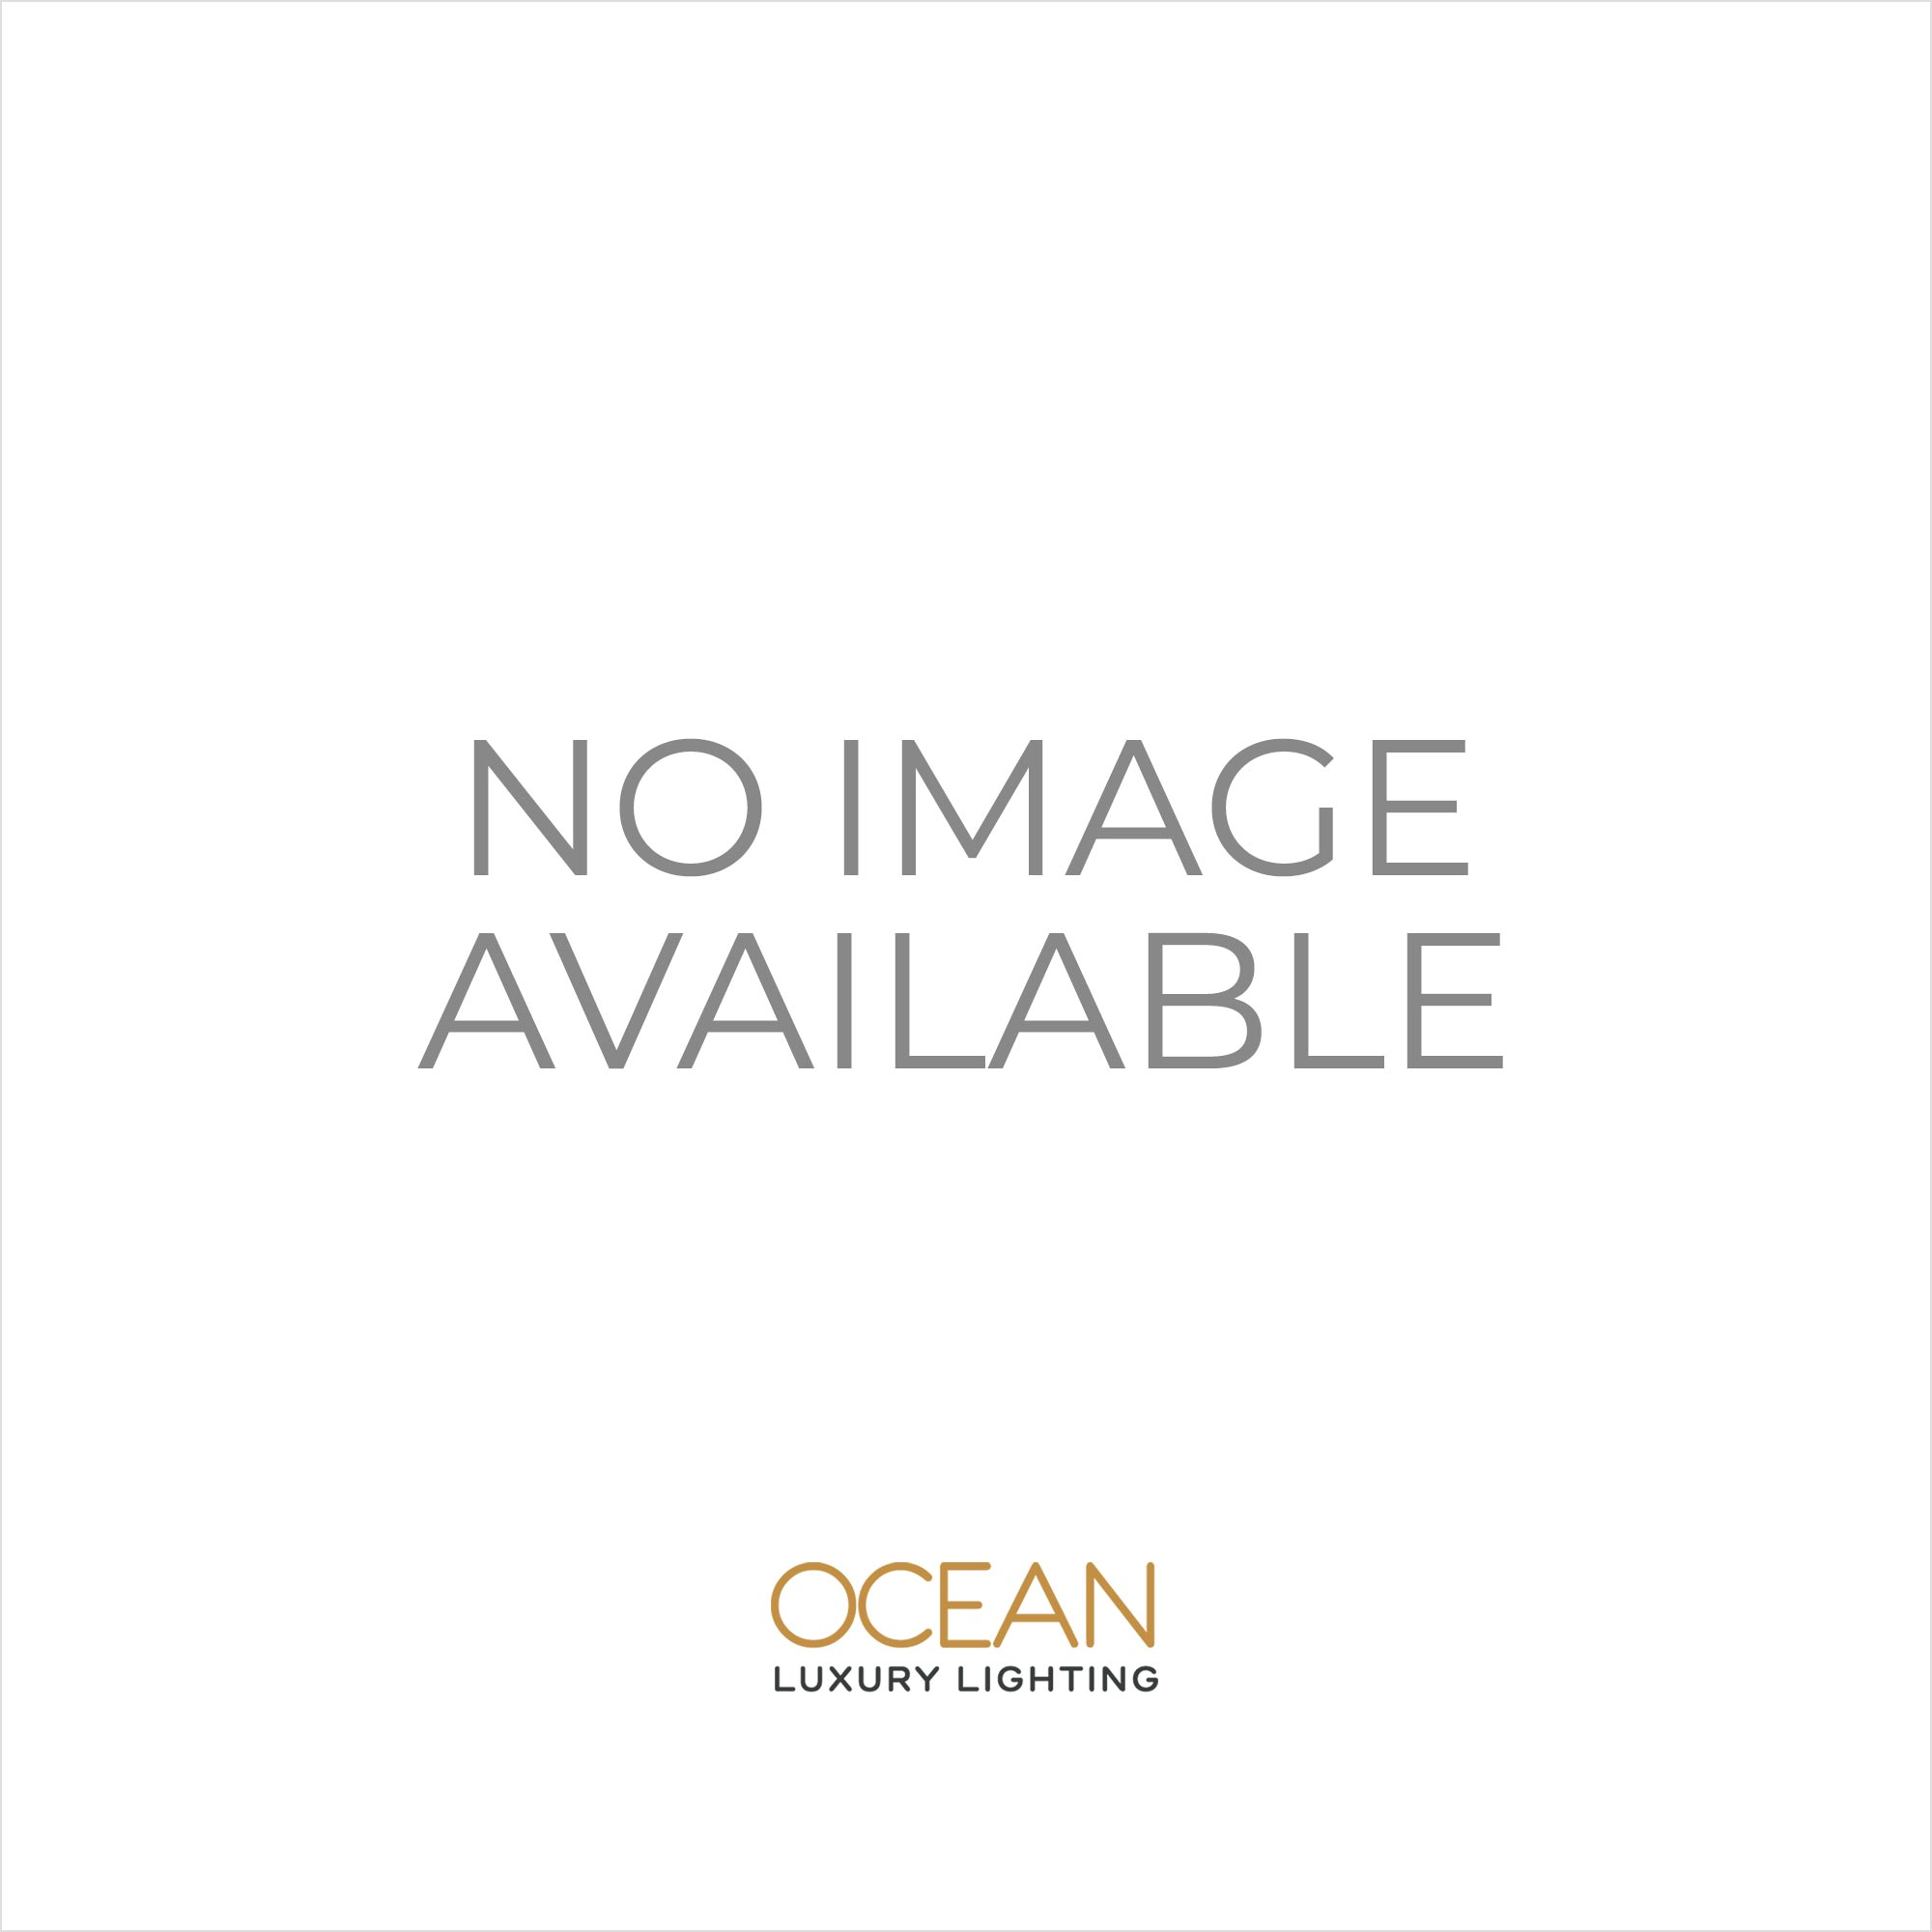 Dar RIG5050/28LE Riga 1 light modern bathroom low energy ceiling light flush polished chrome finish ip44 rated